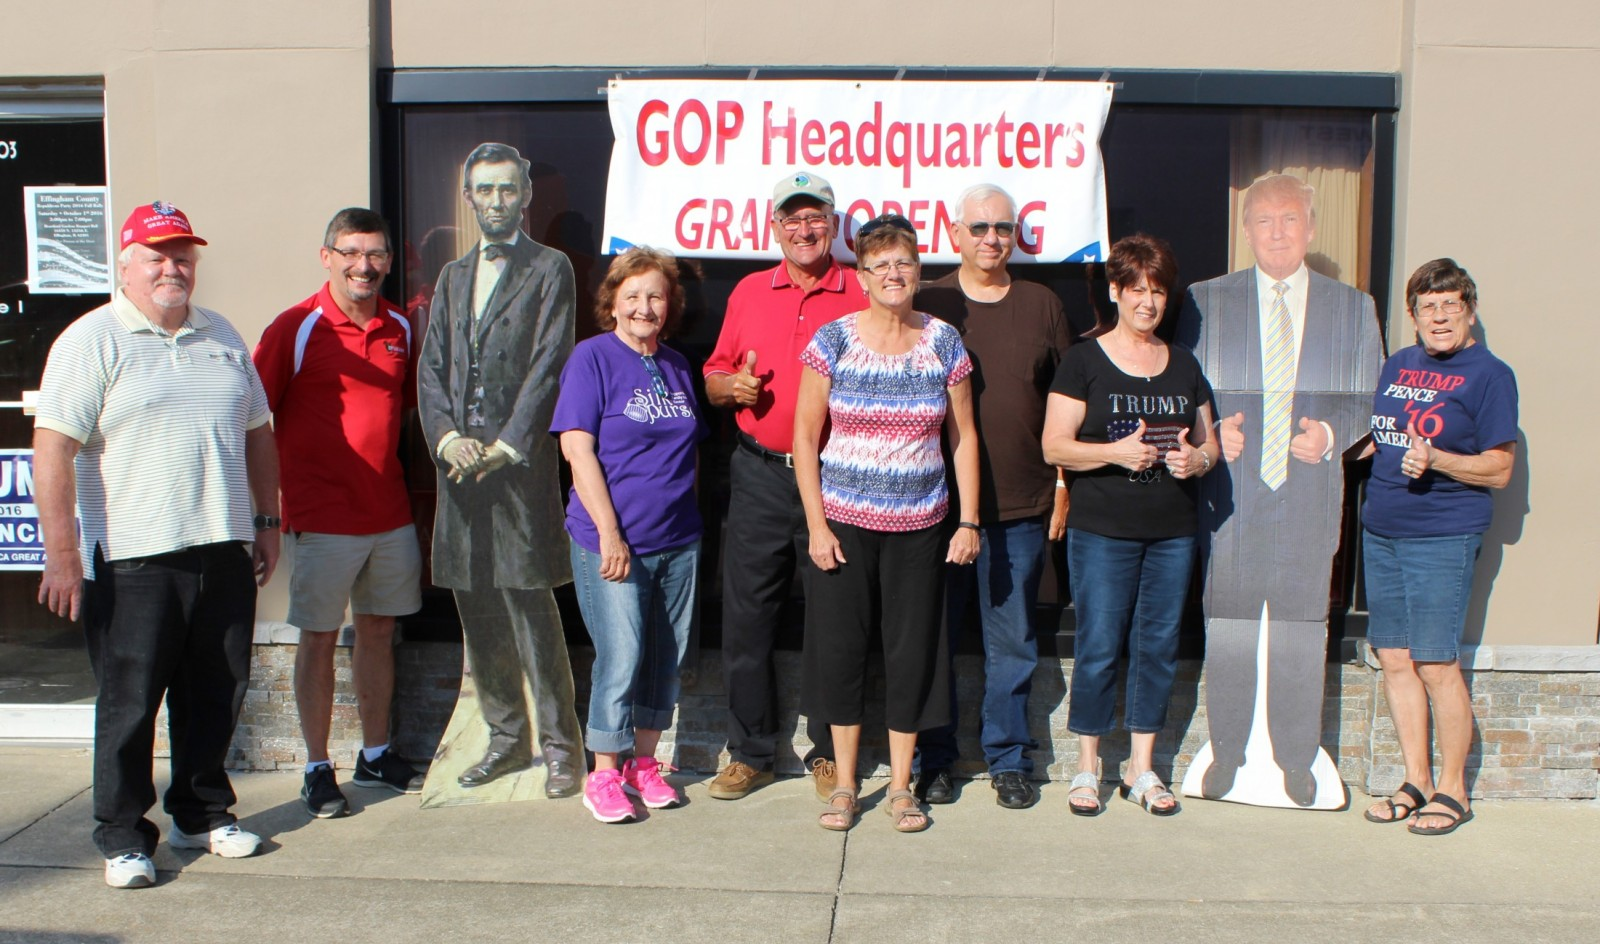 Effingham County Republicans gather at the newly opened GOP Headquarters in downtown Effingham